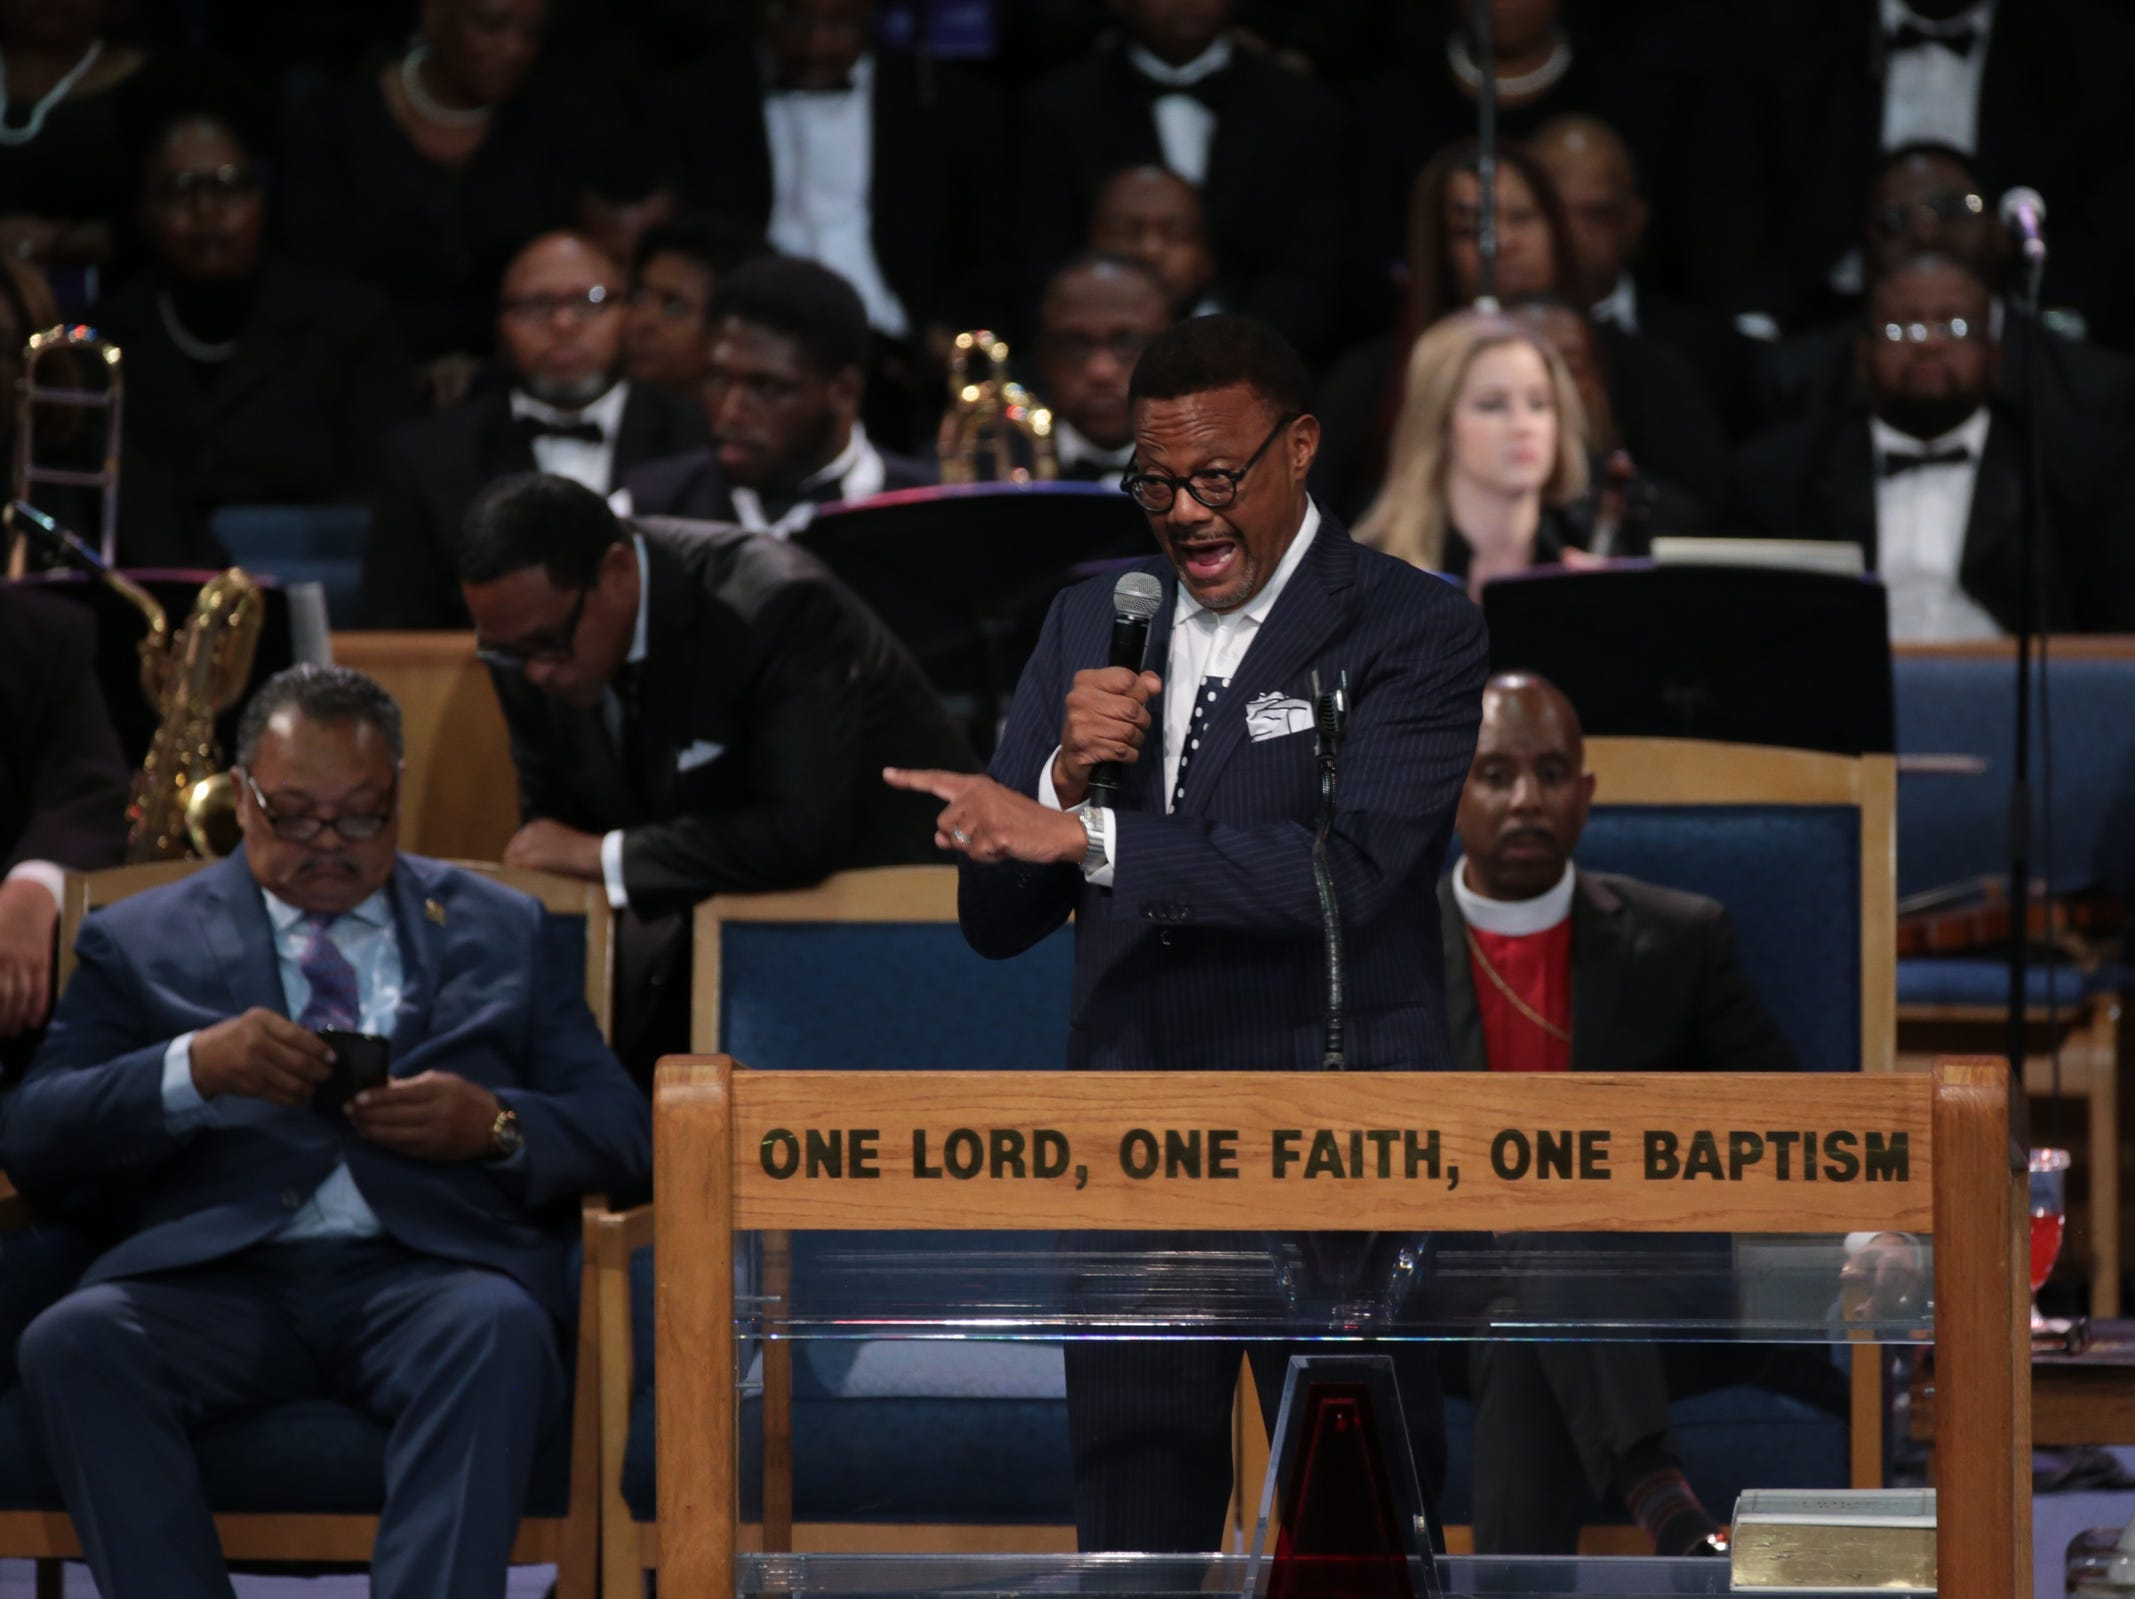 Judge Greg Mathis gives a personal reflection during the funeral for the late Aretha Franklin at Greater Grace Temple in Detroit on Friday, August 31, 2018.